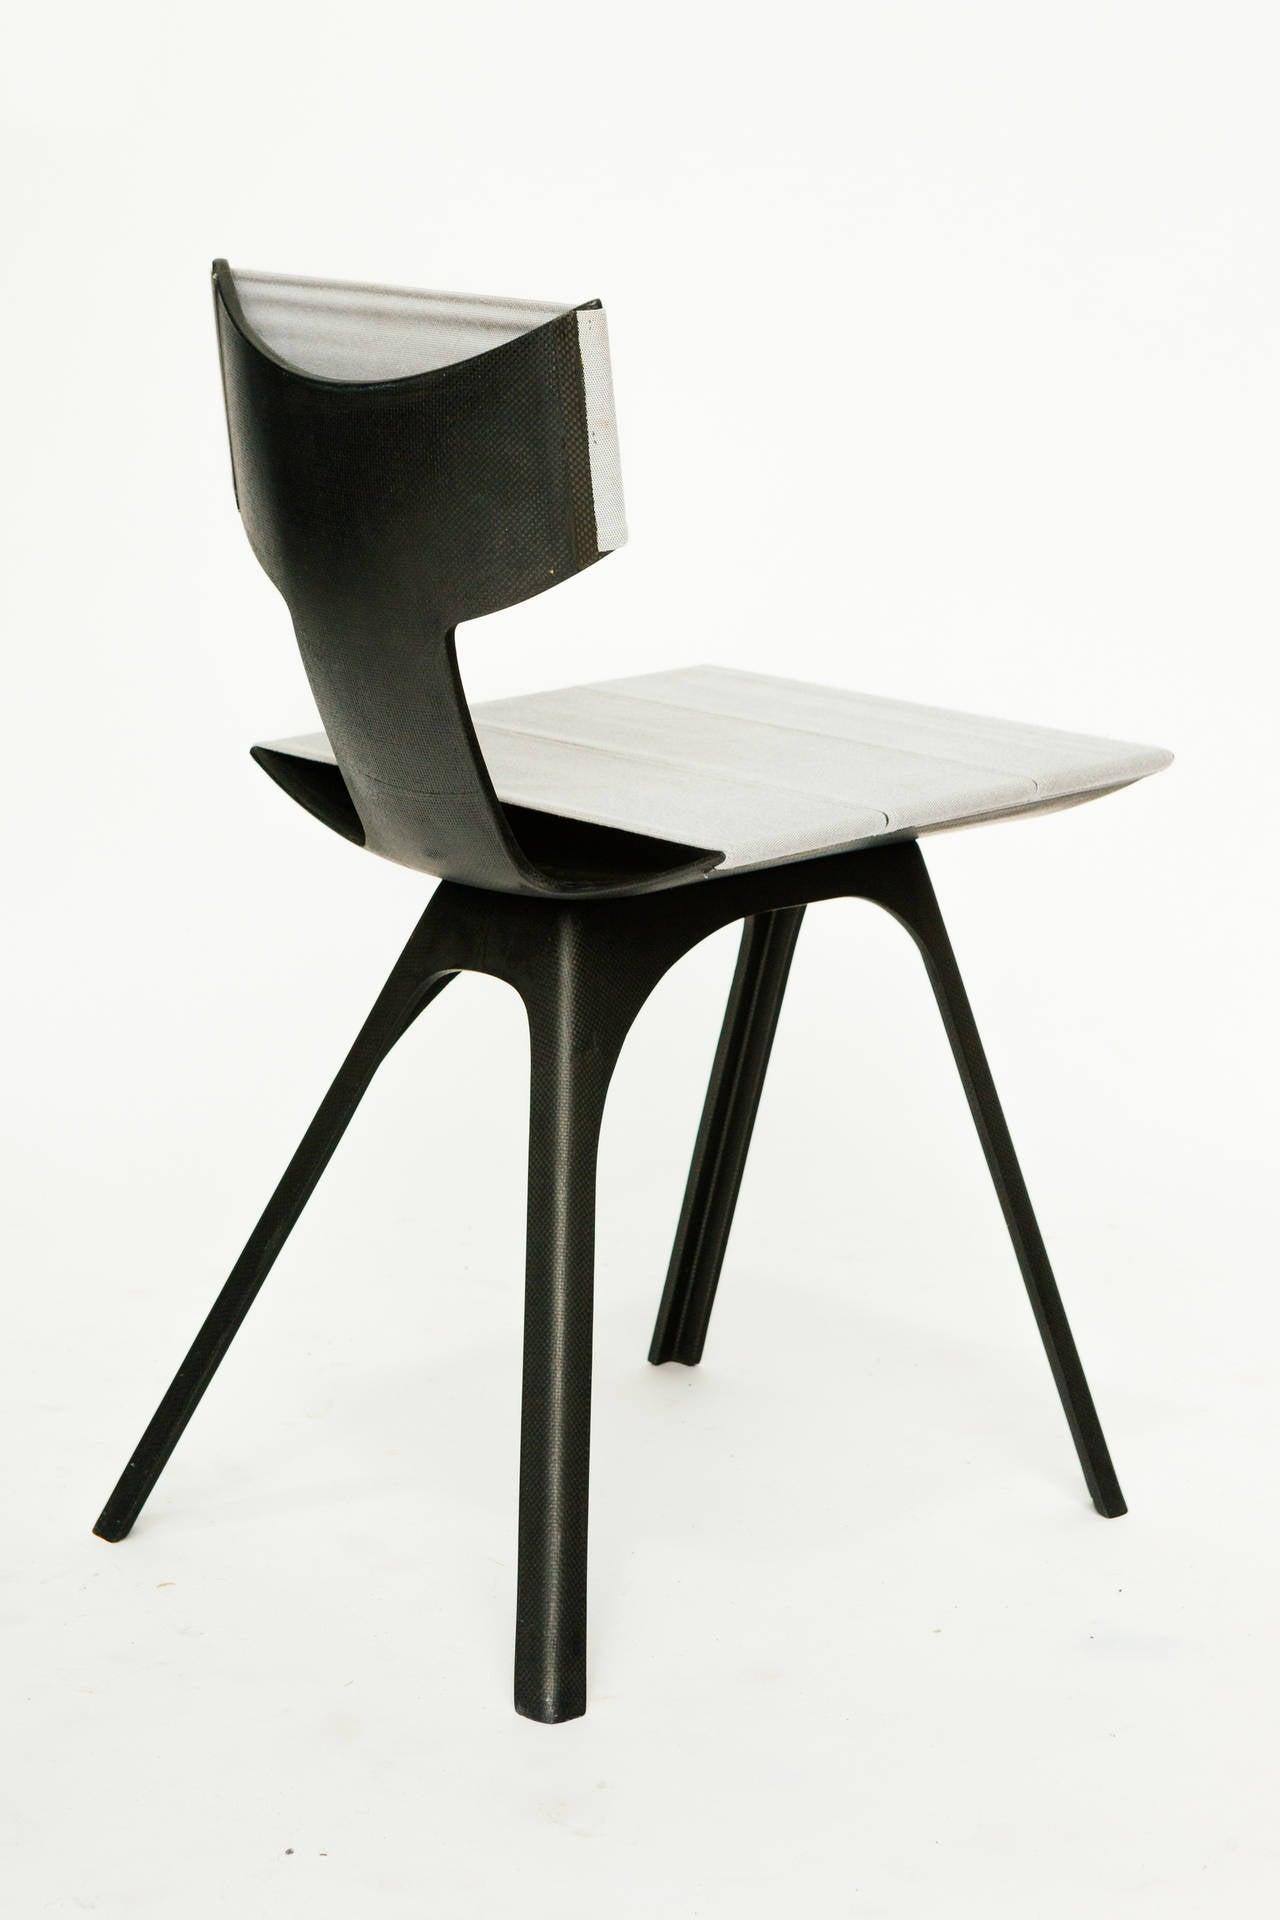 rare soft light chair by alberto meda for sale at 1stdibs. Black Bedroom Furniture Sets. Home Design Ideas